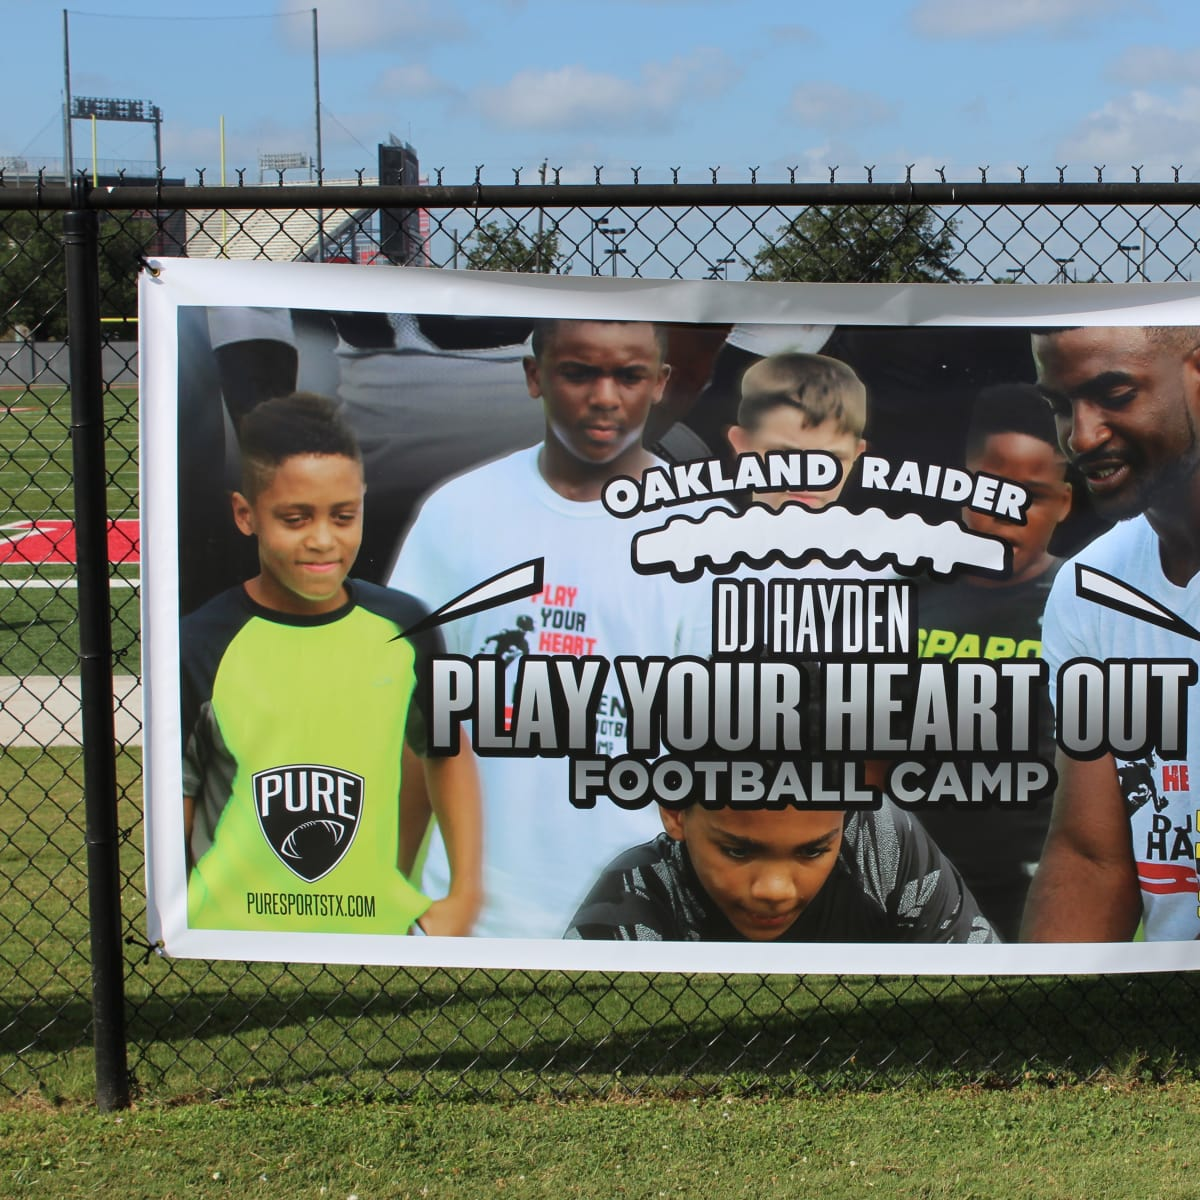 DJ Hayden Football Camp 2015 sign